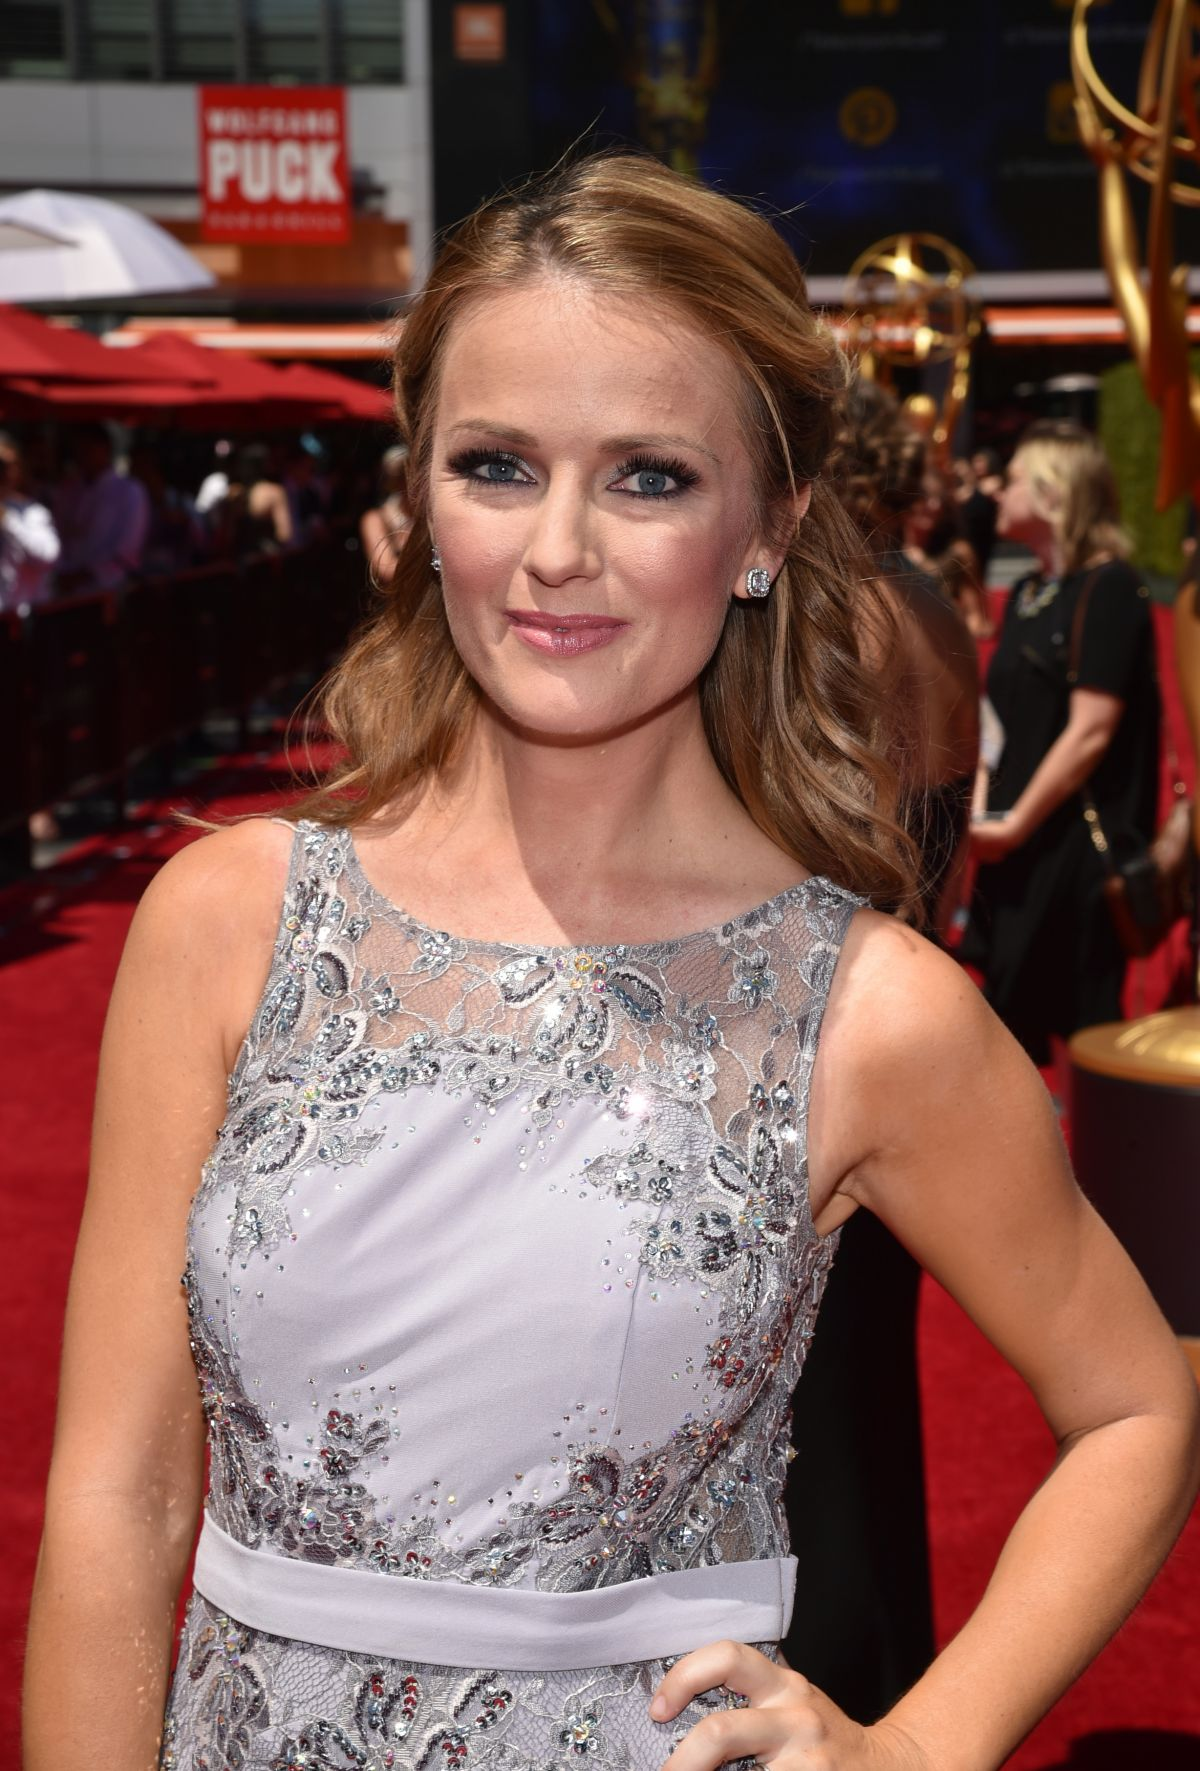 BROOKE ANDERSON at 2014 Creative Arts Emmy Awards in Los Angeles